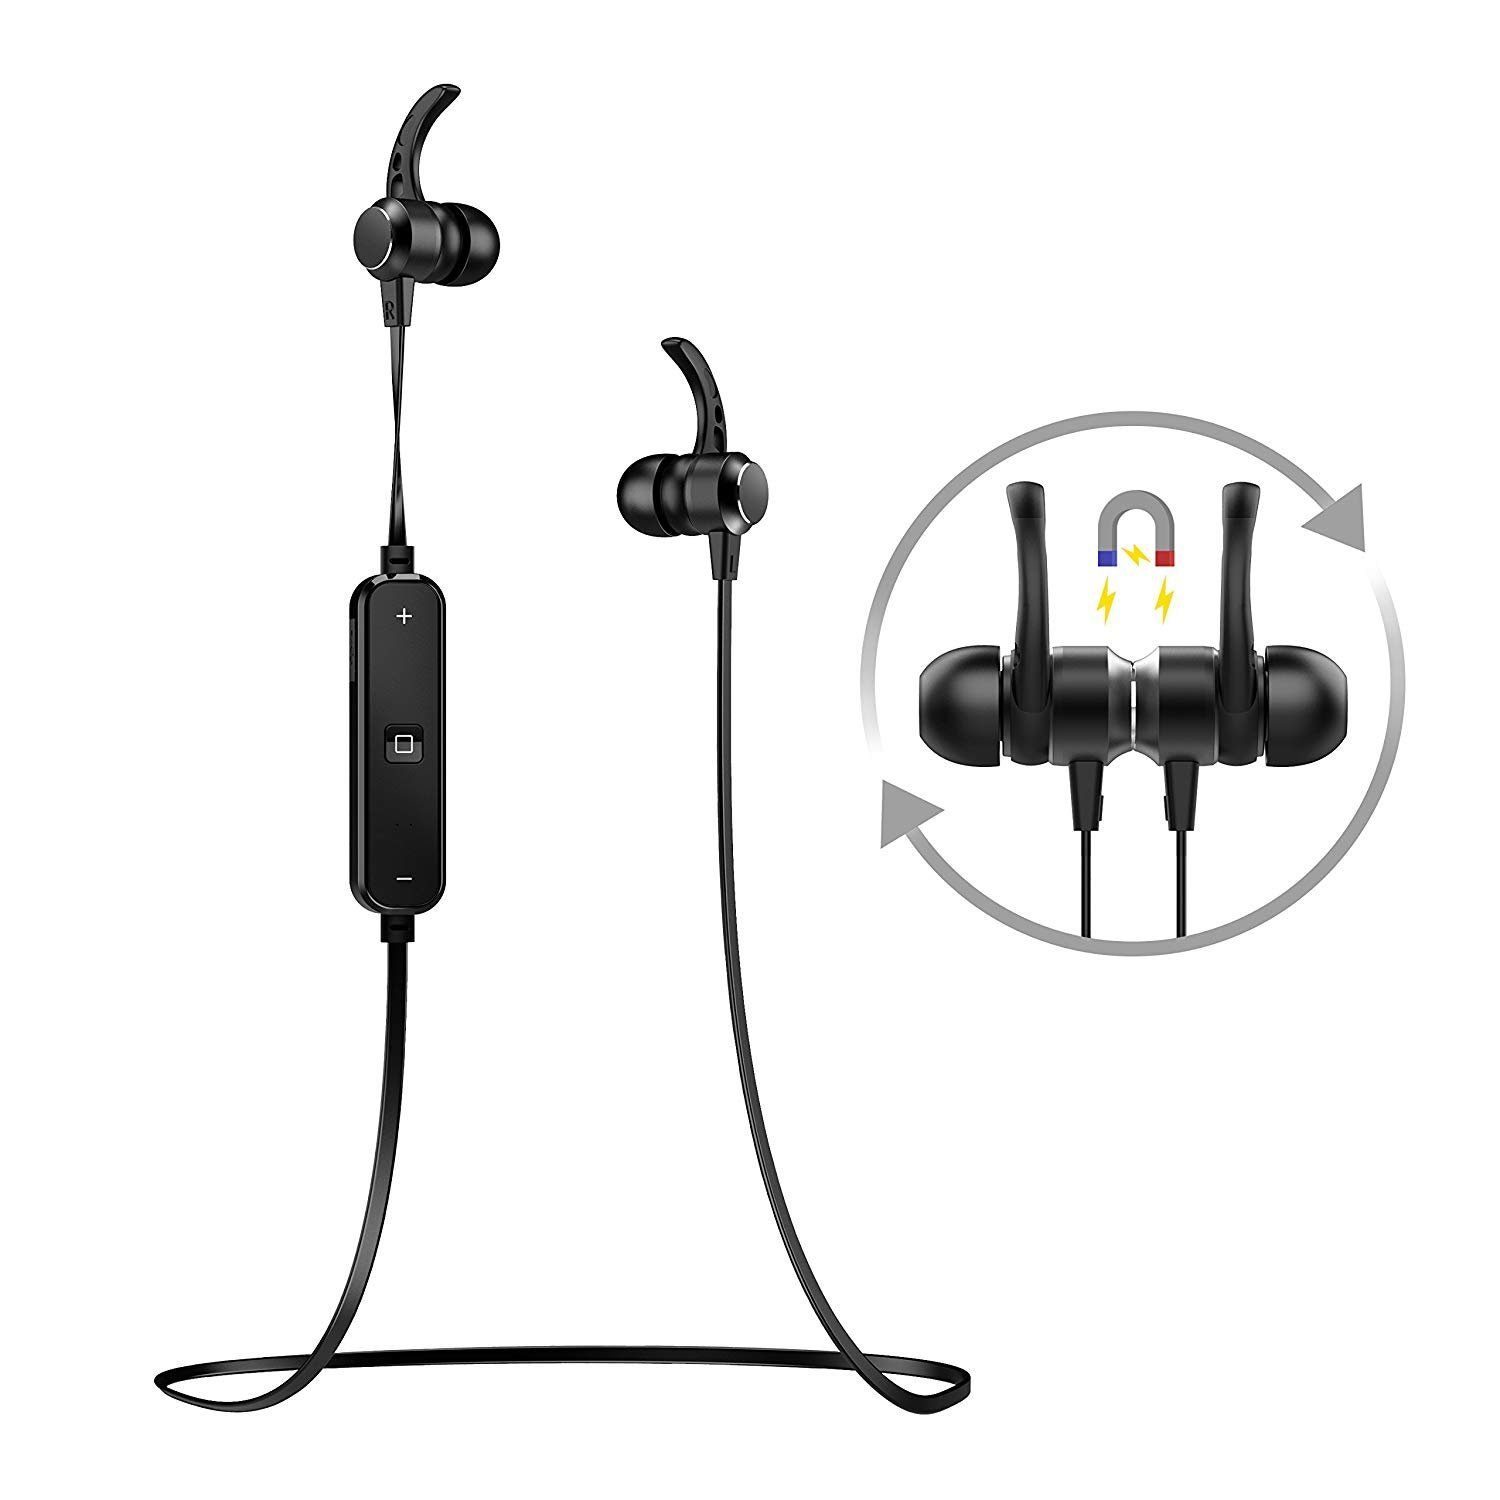 Bluetooth Earbuds, Wireless. Headphones Headsets Stereo in-Ear Earpieces Earphones with Noise Canceling Microphone.6 by SHBGU (Image #1)